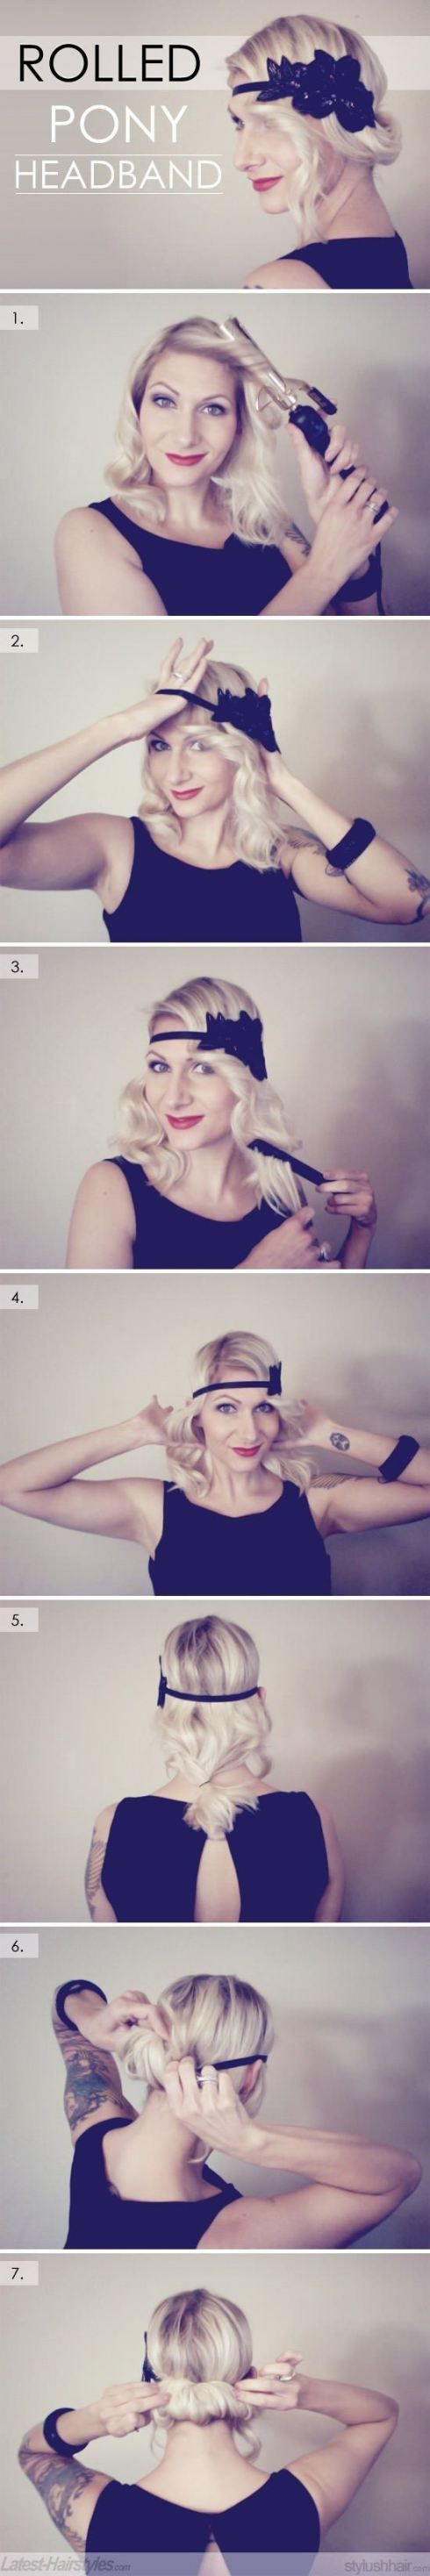 Headband Hair Tuck Tutorial